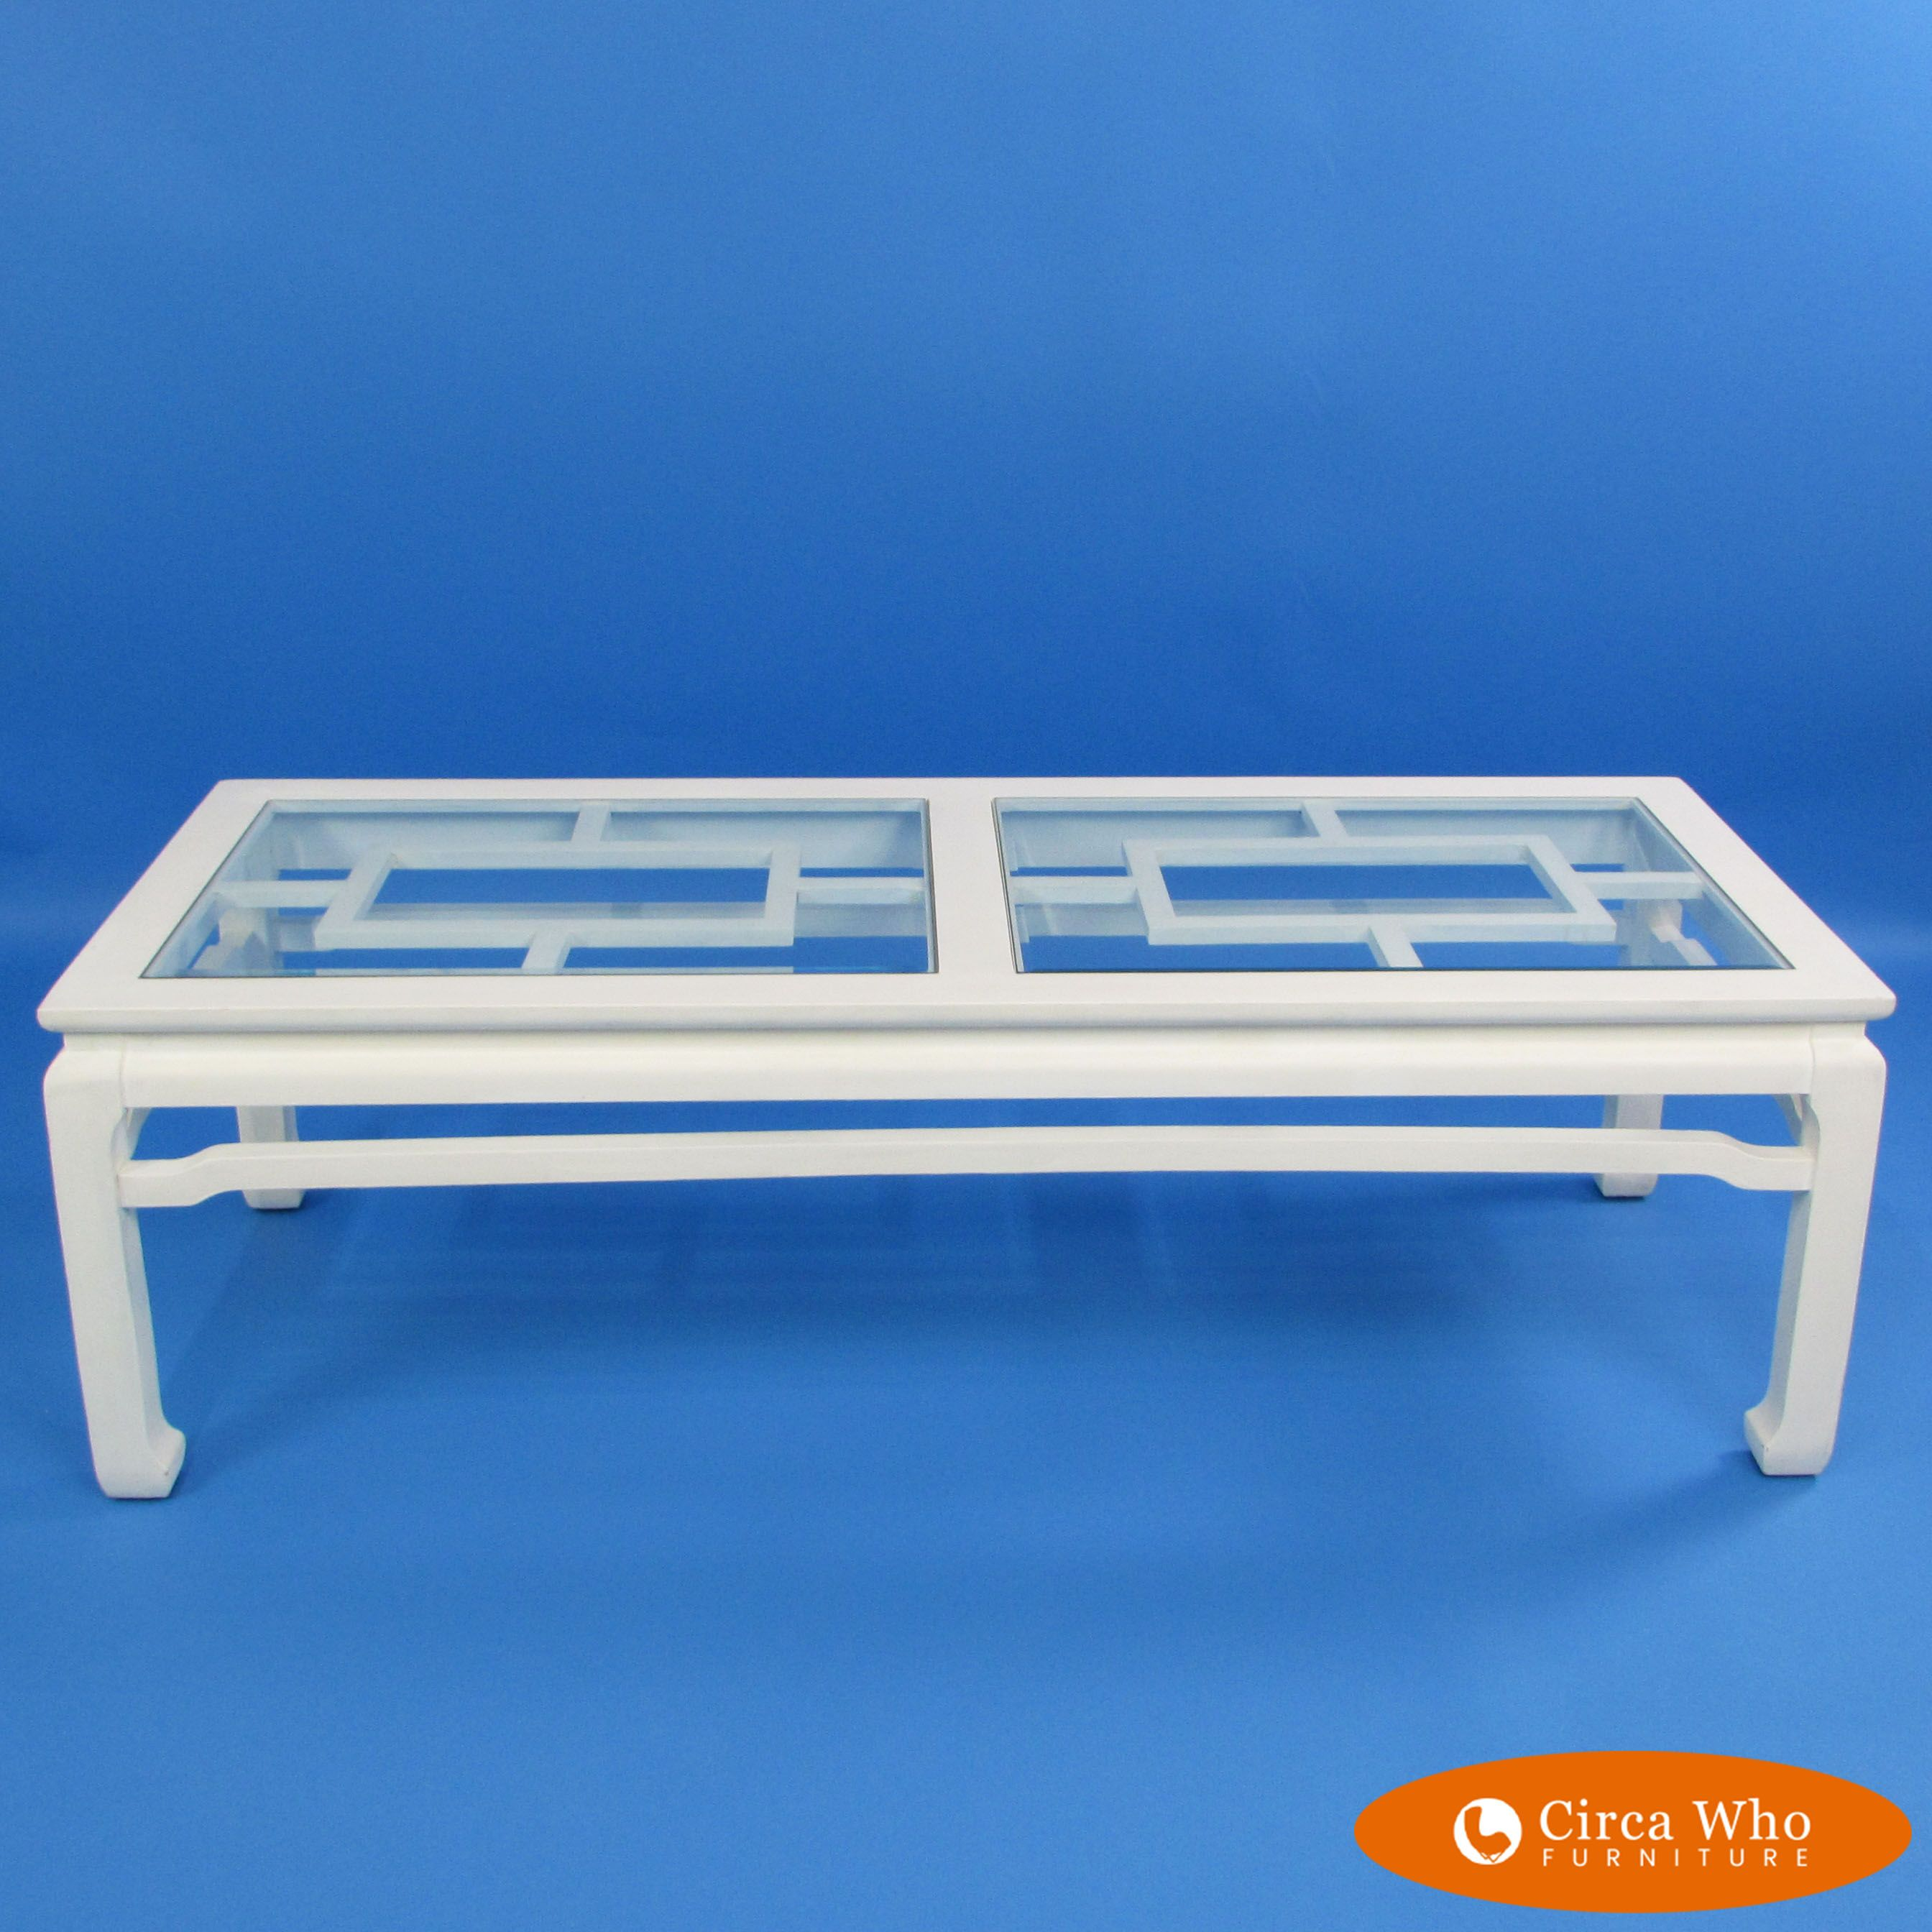 Fretwork Coffee Table.Ming Style Fretwork Coffee Table In 2019 Circa Who Furniture New